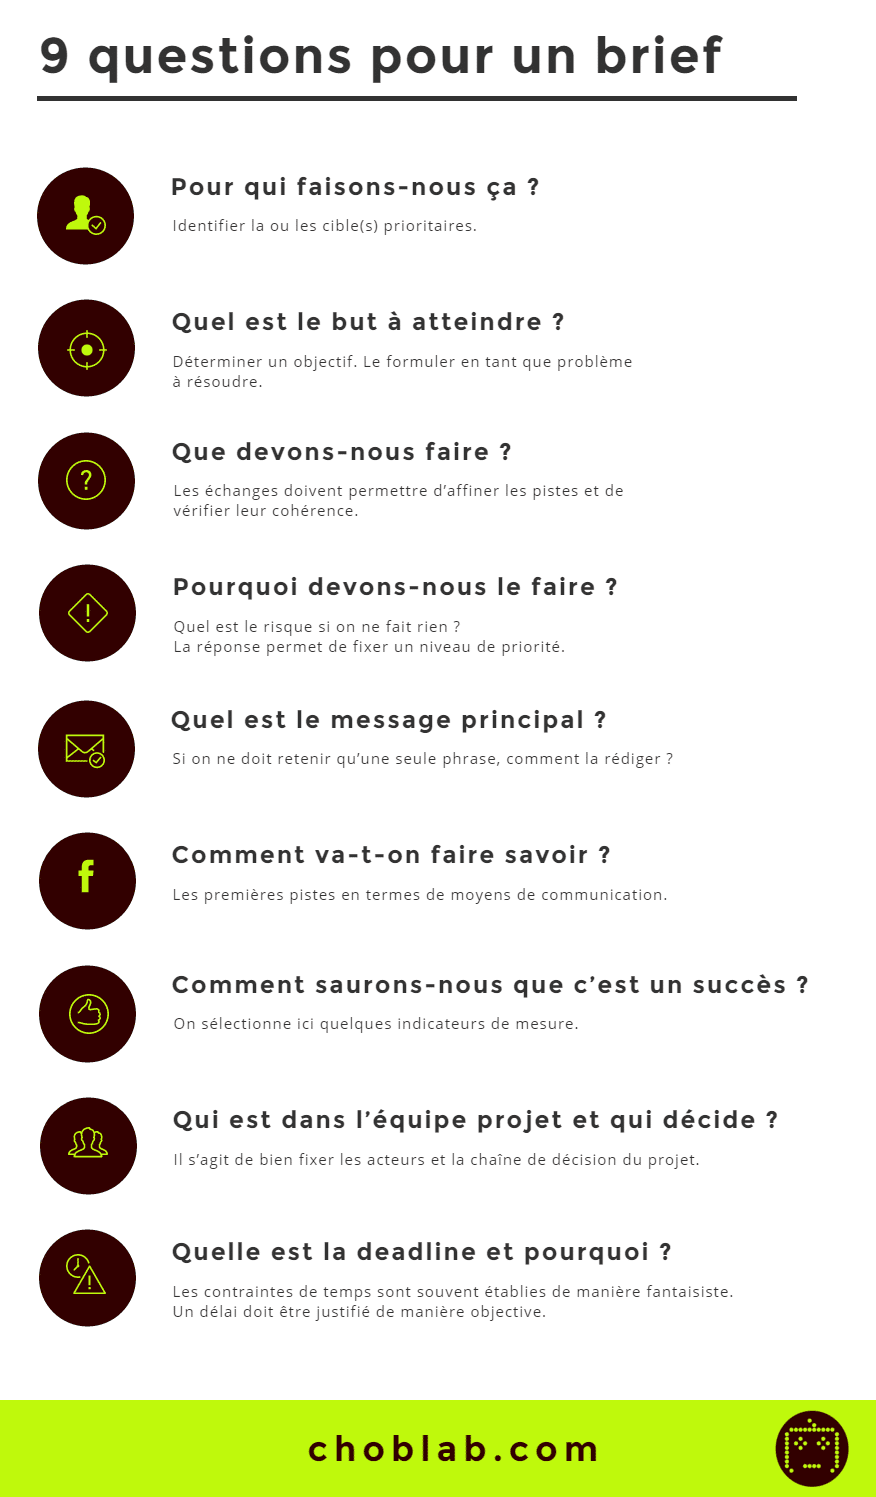 Faire un brief en 9 questions #infographie